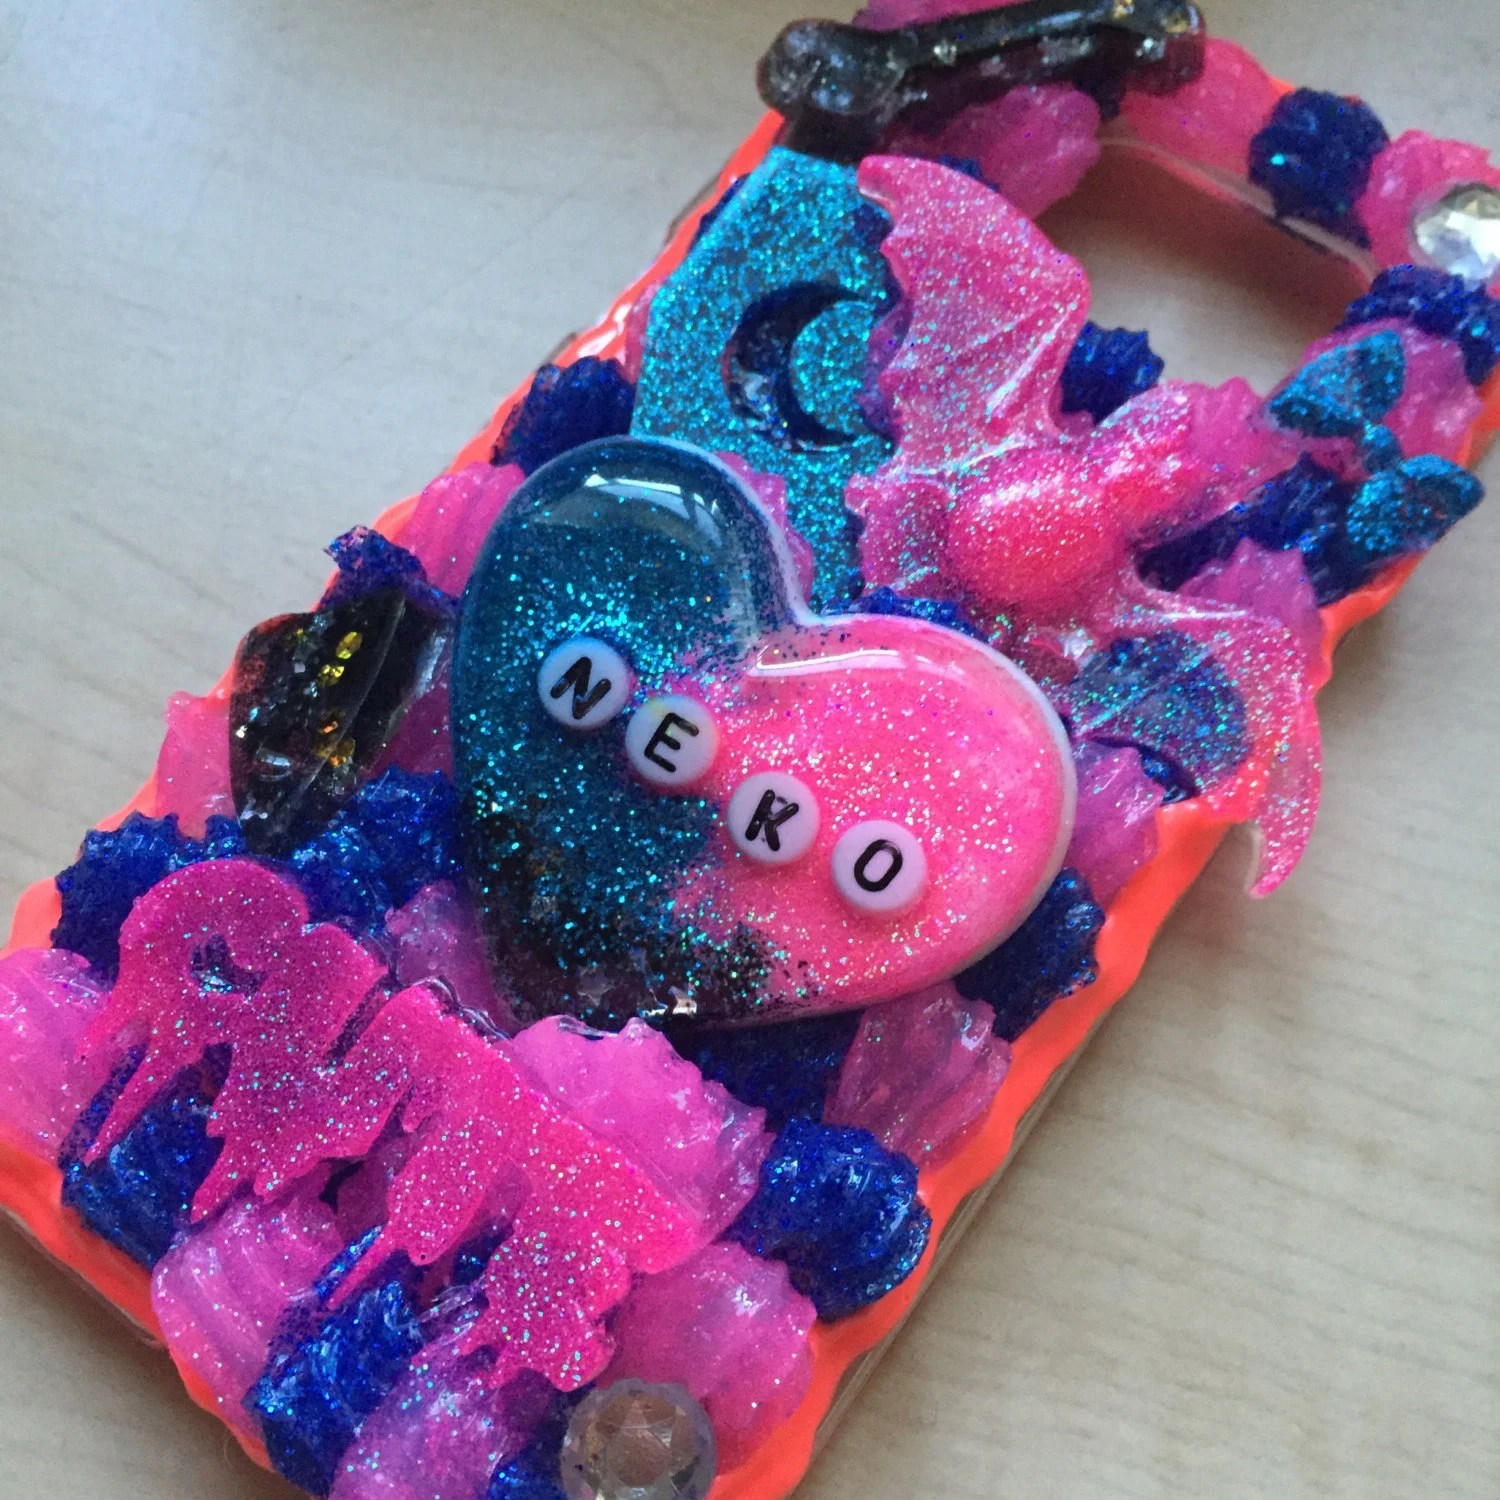 Make Your Own Iphone 5 Wallpaper Custom Decoden Phone Case Kawaii Phone Case Sweets Deco